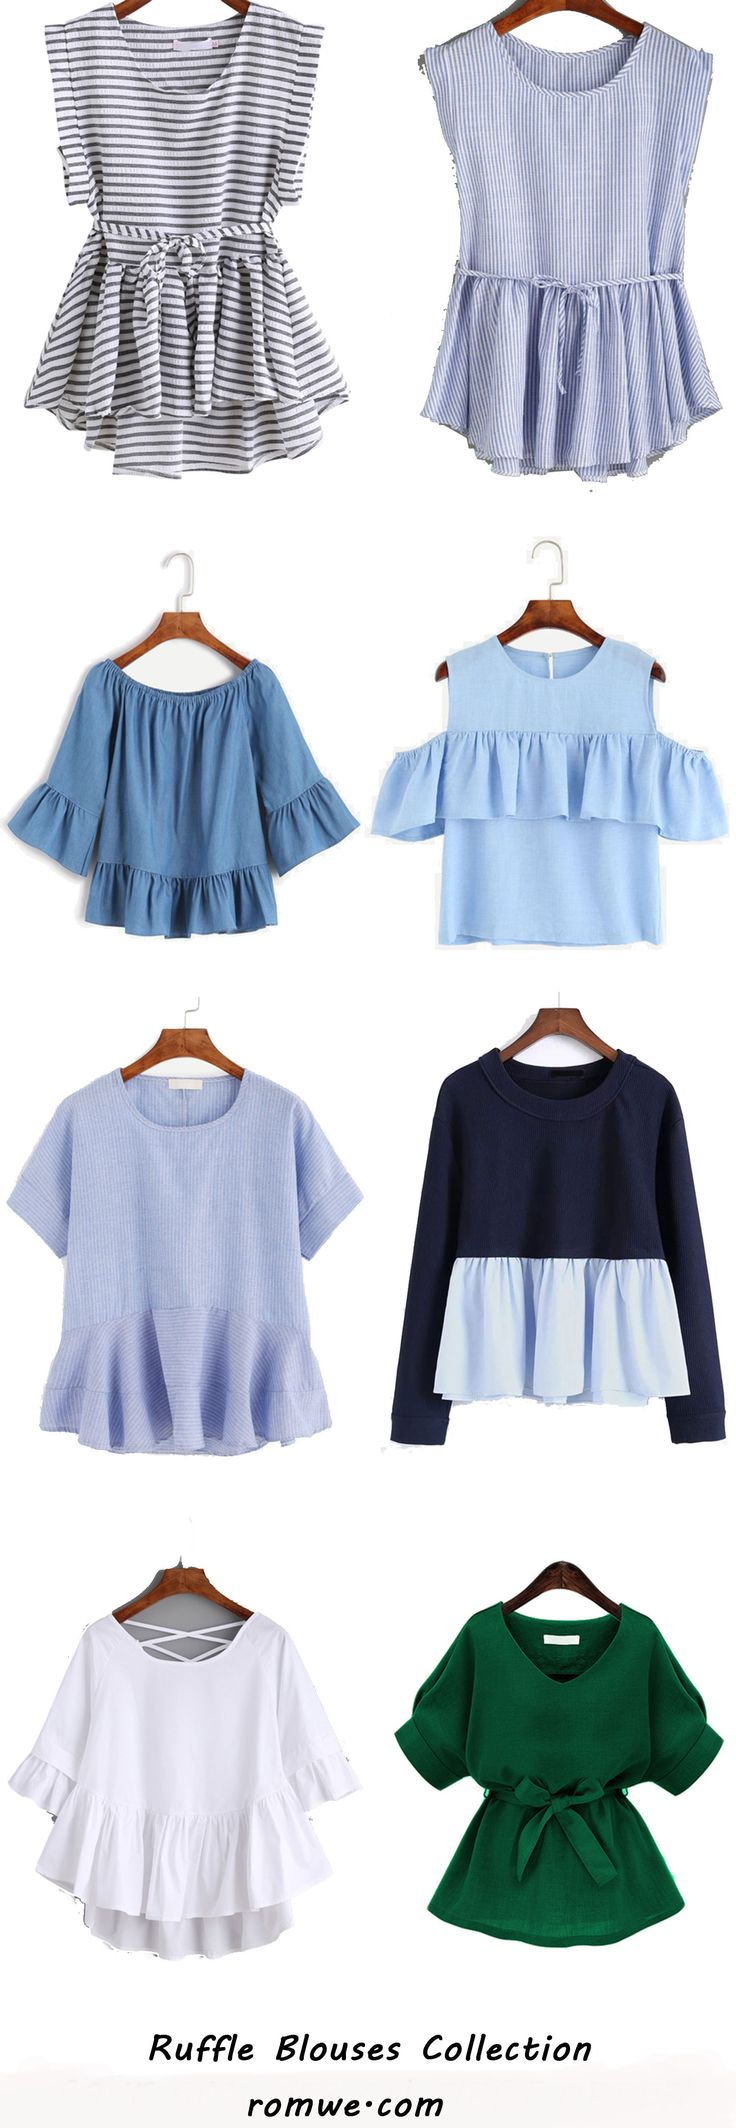 Cute Ruffle Blouses Collection - romwe.com